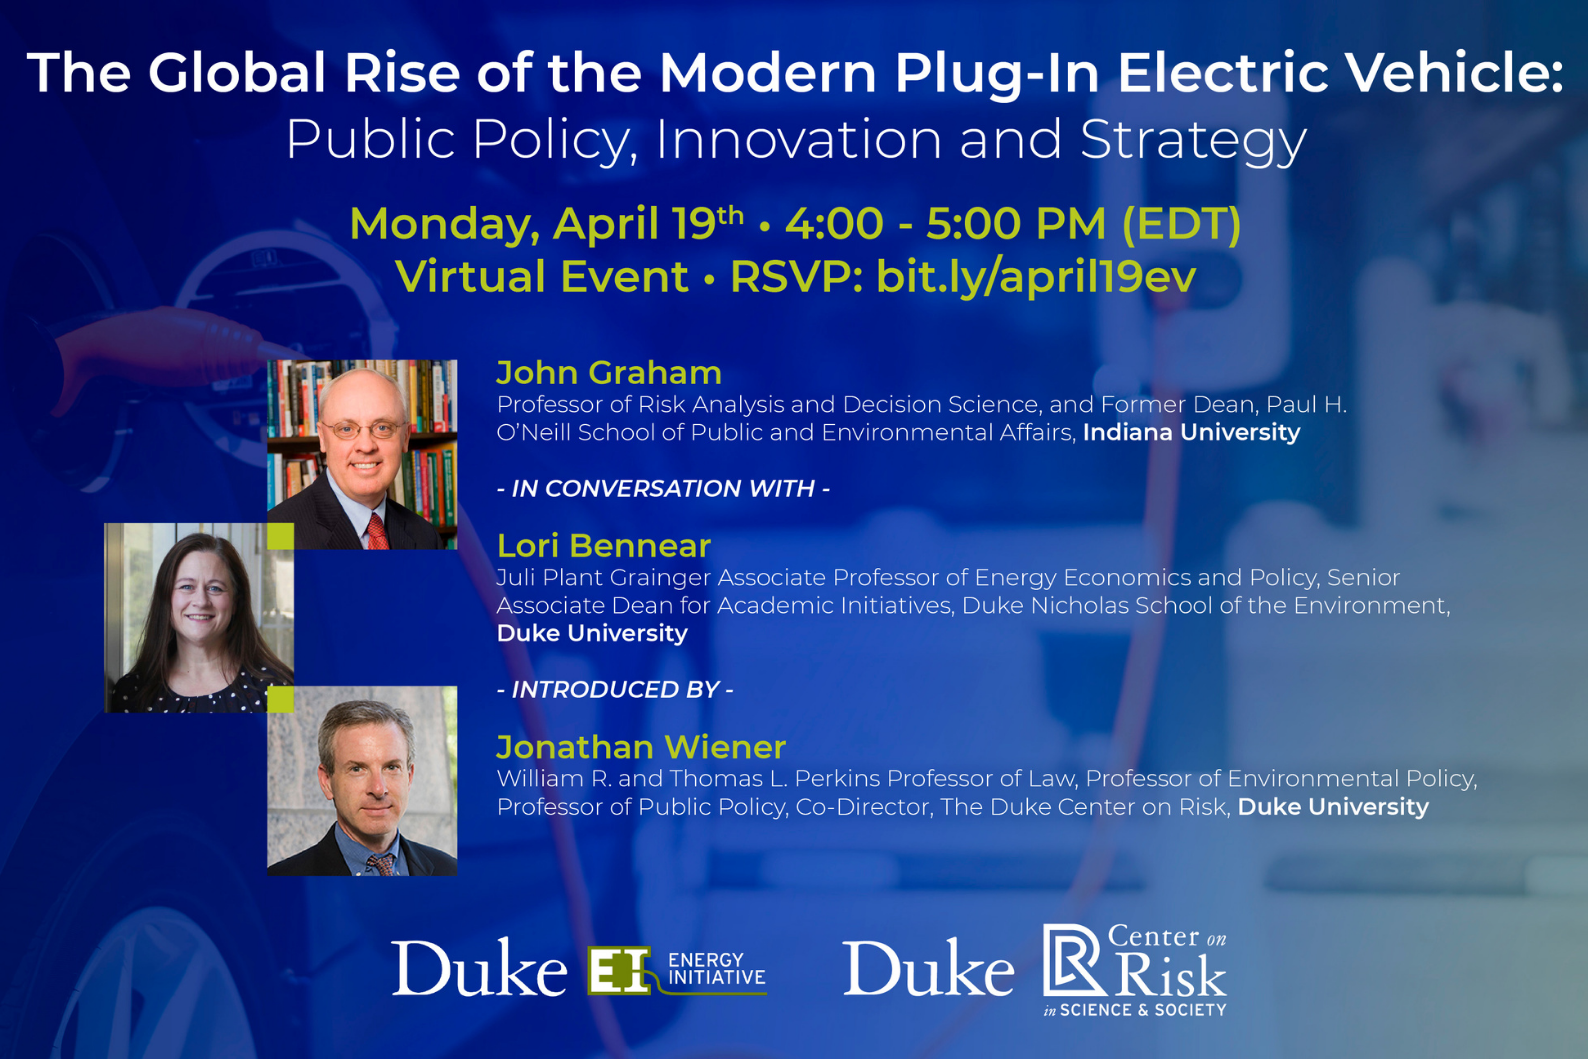 Text overlay: The global rise of the modern plug-in electric vehicle: Public policy, innovation, and strategy. Monday, April 19, 4-5 p.m. EDT. Virtual event. RSVP: bit.ly/april19ev. Headshots and bios: John Graham - Professor of Risk Analysis and Decision Science and Former Dean, Paul H. O'Neill School of Public and Environmental Affairs, Indiana University. In Conversation with: Lori Bennear - Juli Plant Grainger Associate Professor of Energy Economics and Policy, Senior Associate Dean for Academic Initiatives, Nicholas School of the Environment, Duke University. Introduced by: Jonathan Wiener. William R. and Thomas L. Perkins Professor of Law, Professor of Environmental Policy, Professor of Public Policy, Co-Director of the Duke Center on Ris, Duke University. Logos for Duke University Energy Initiative, Duke Center on Risk at the Initiative for Science & Society. Background: blurry image of vehicle plugged into EV charging station.